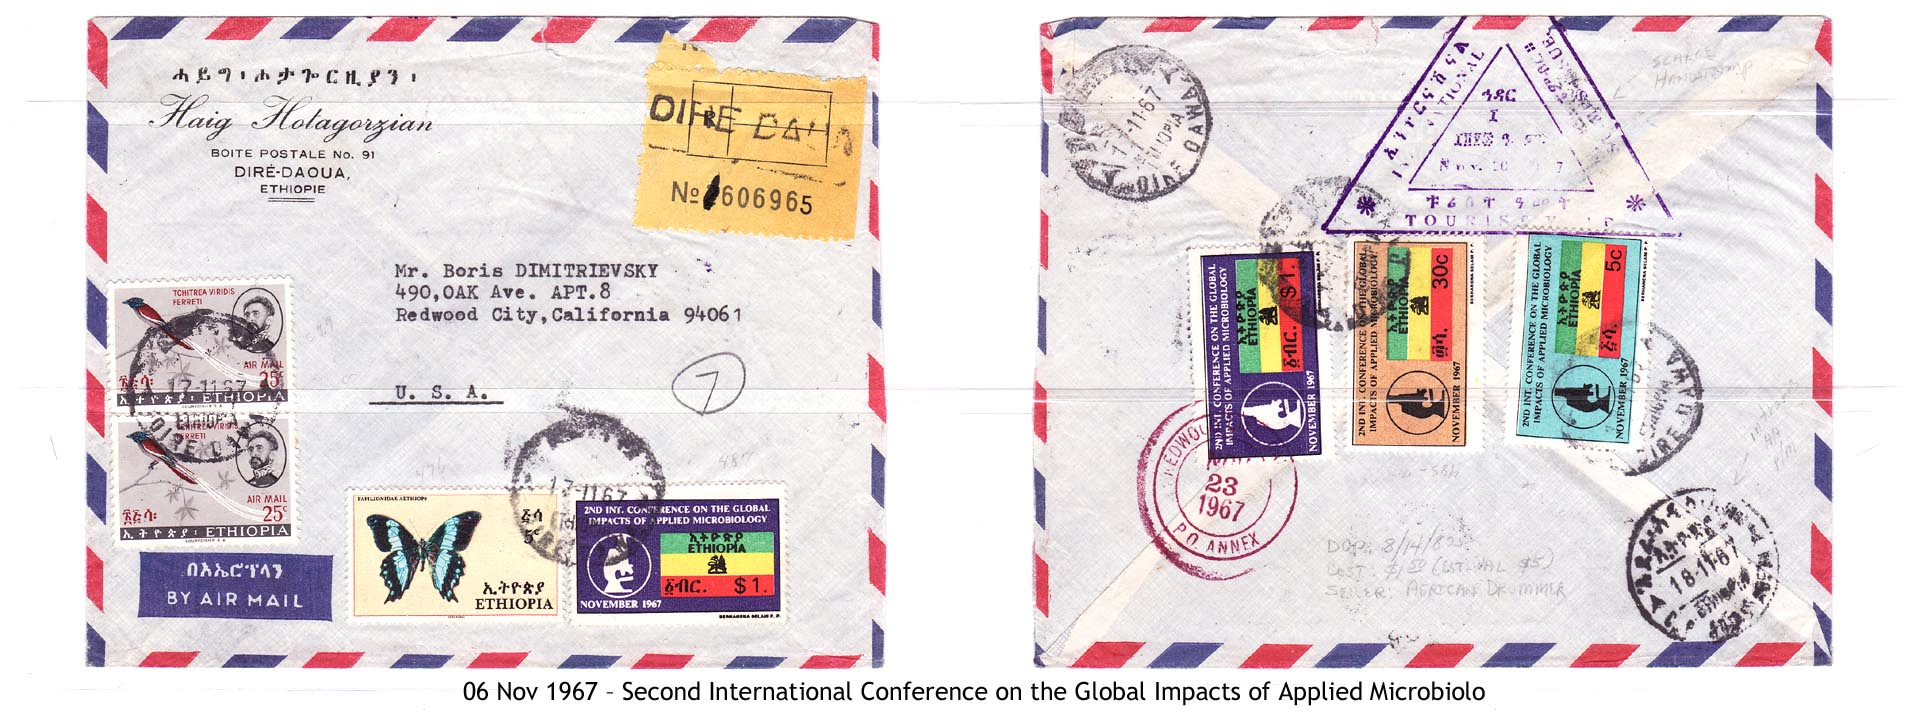 19671106 – Second International Conference on the Global Impacts of Applied Microbiology